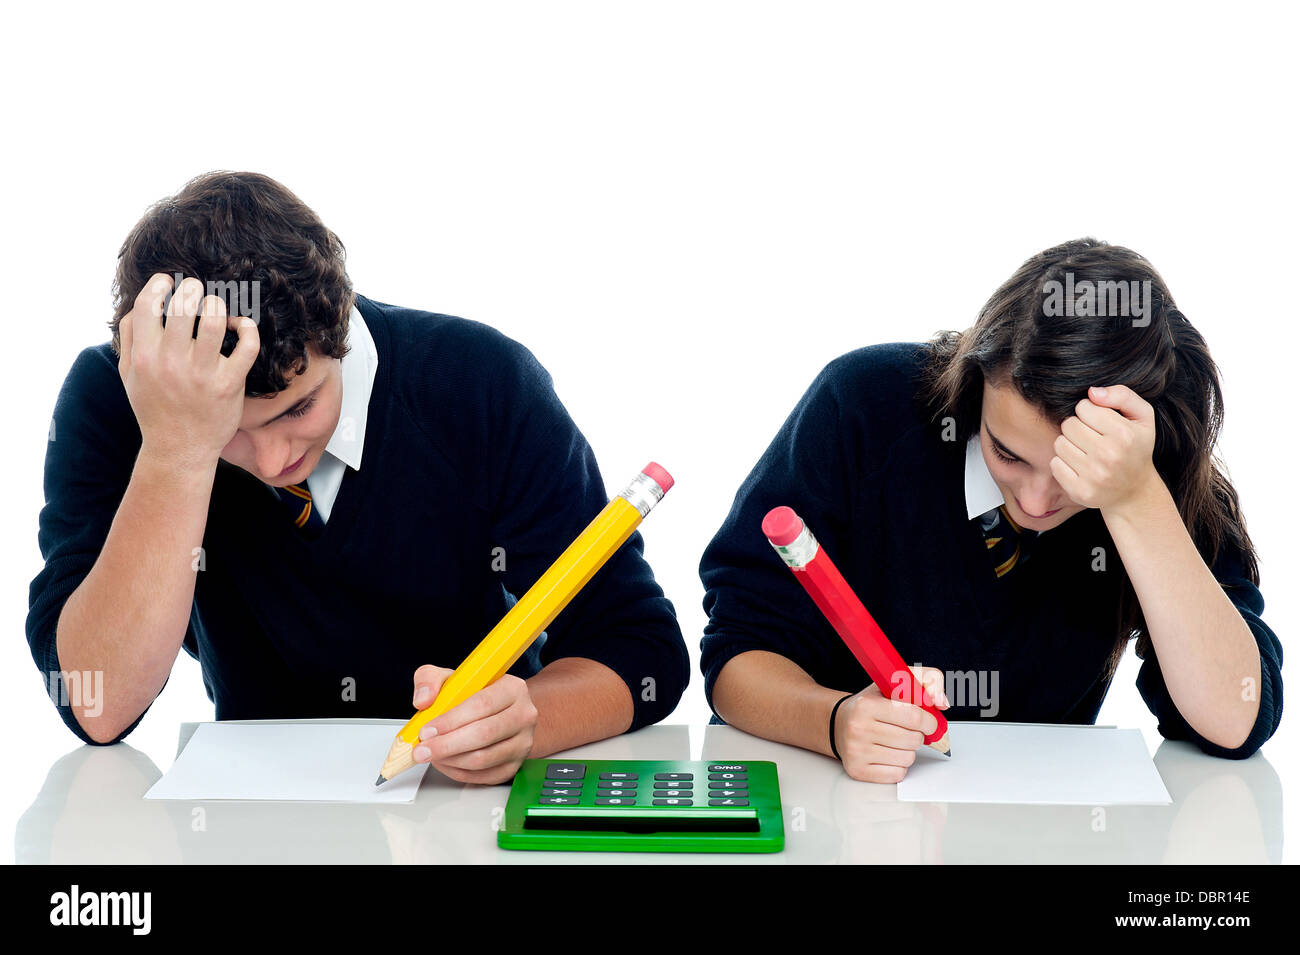 Students trying to recollect the answer - Stock Image